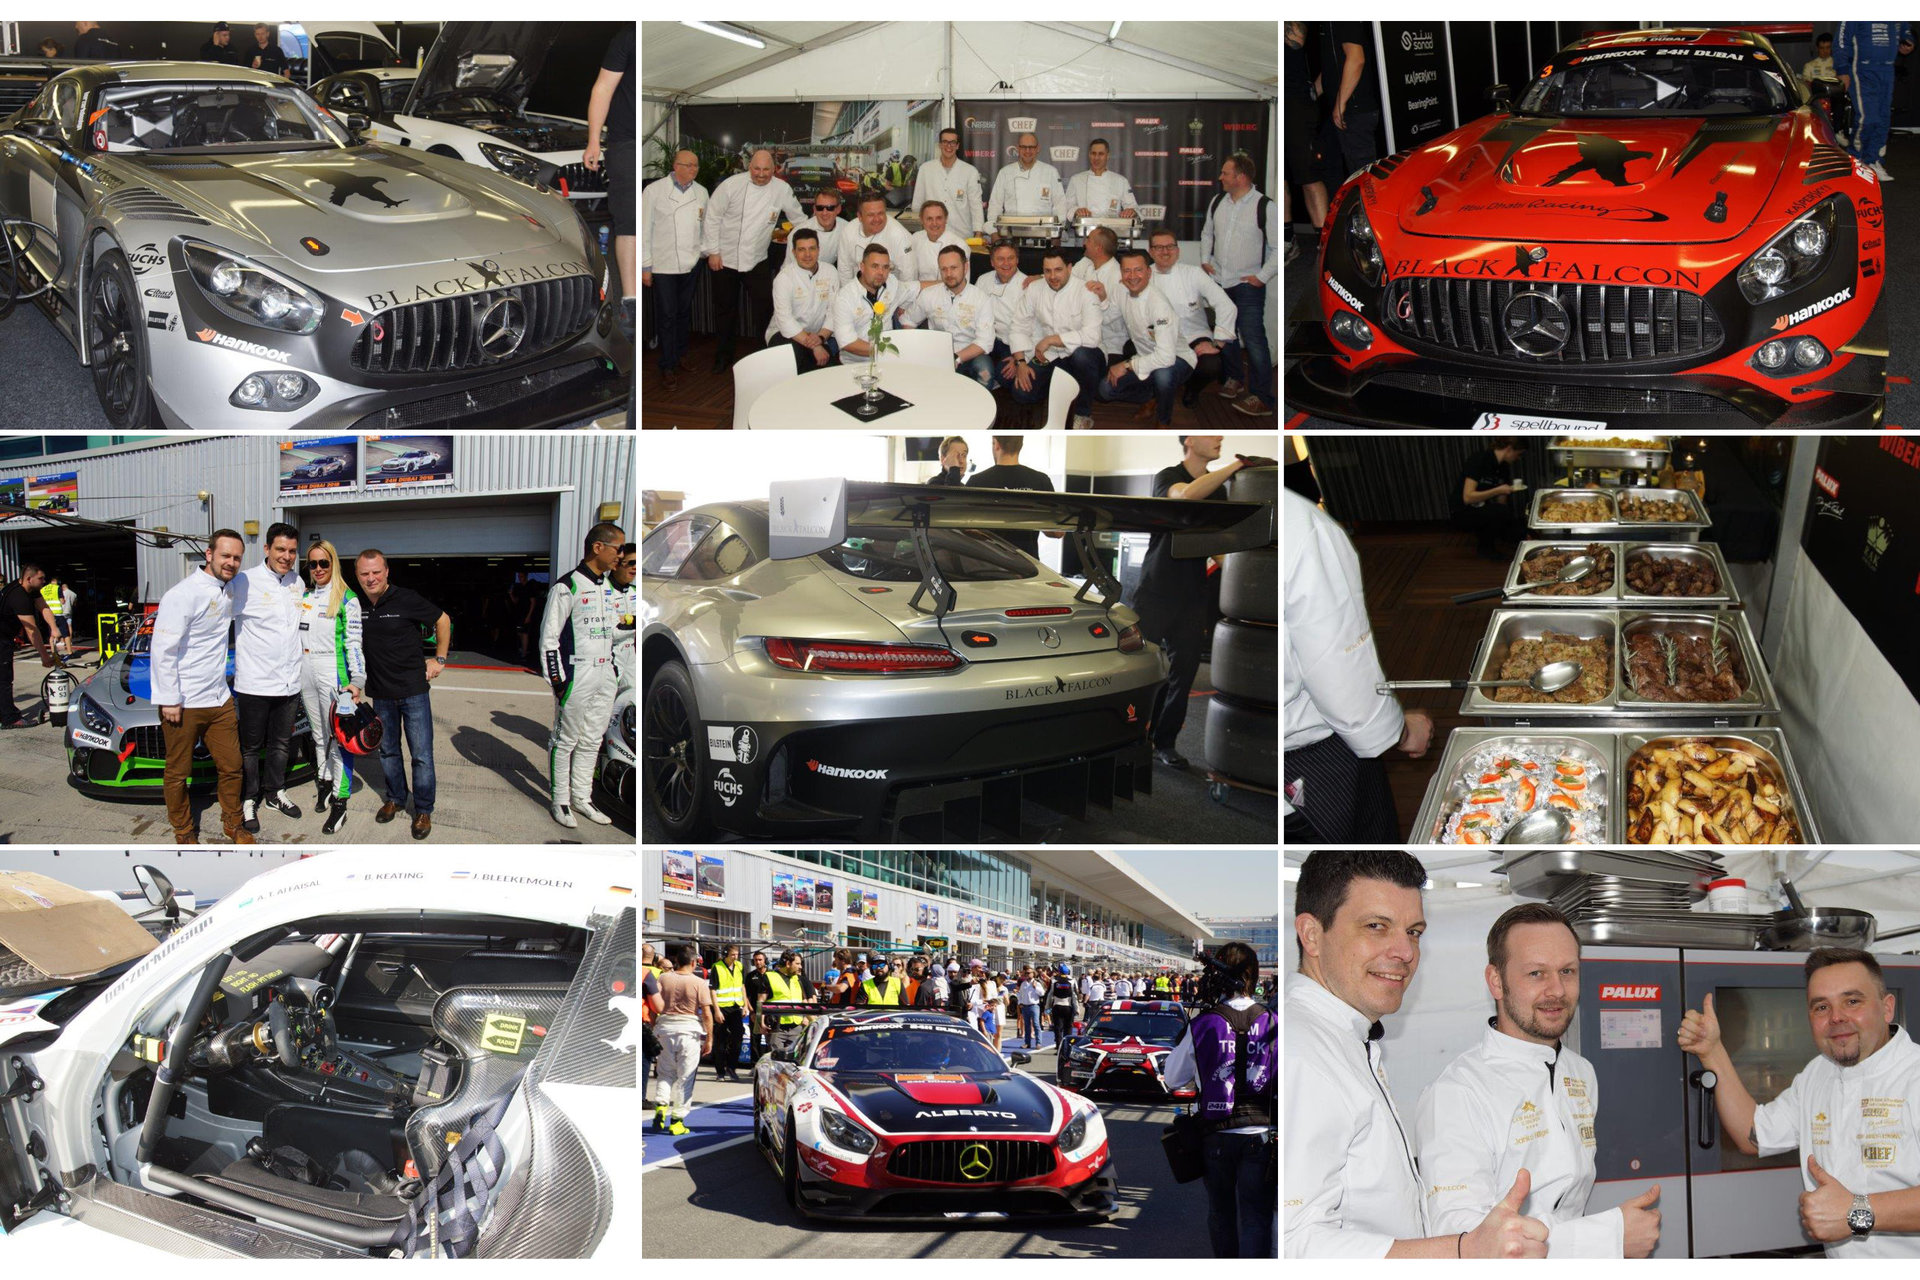 PALUX kitchen equipment at the 24-hour race in Dubai